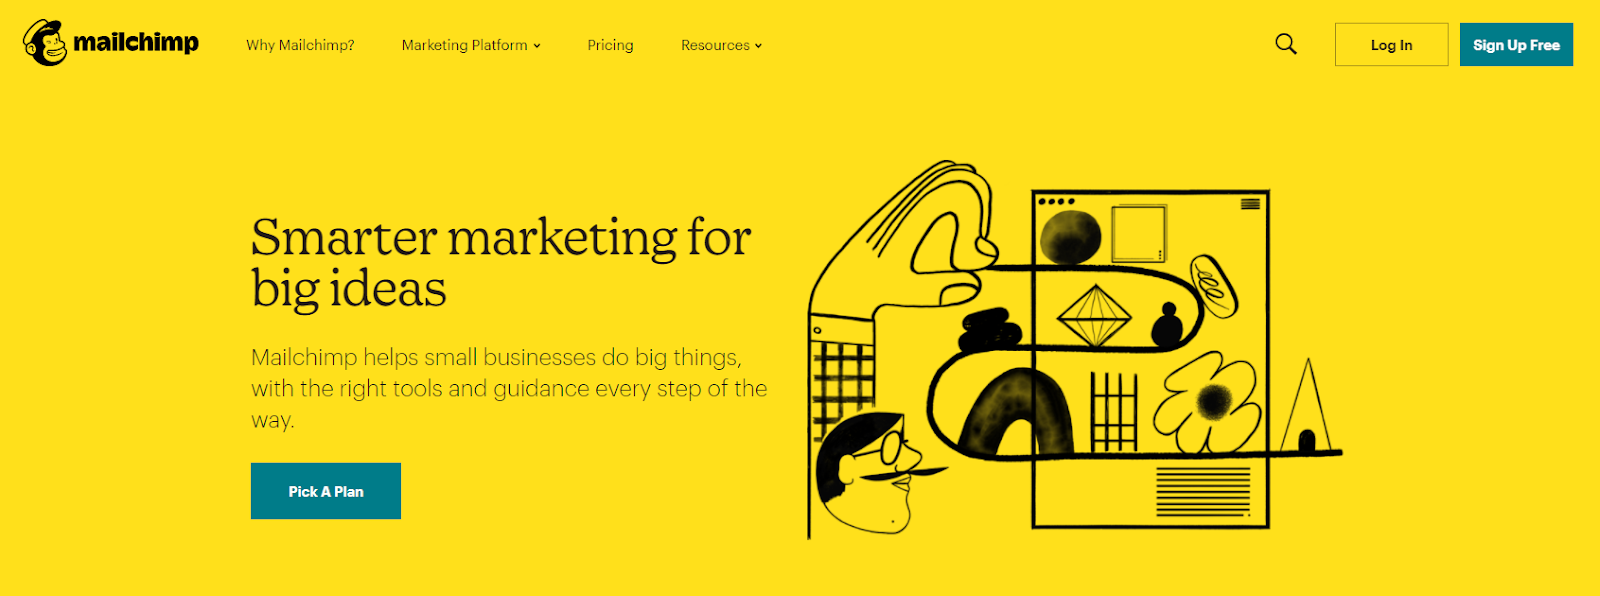 15 Best Digital Marketing Tools to Grow Your Business 12